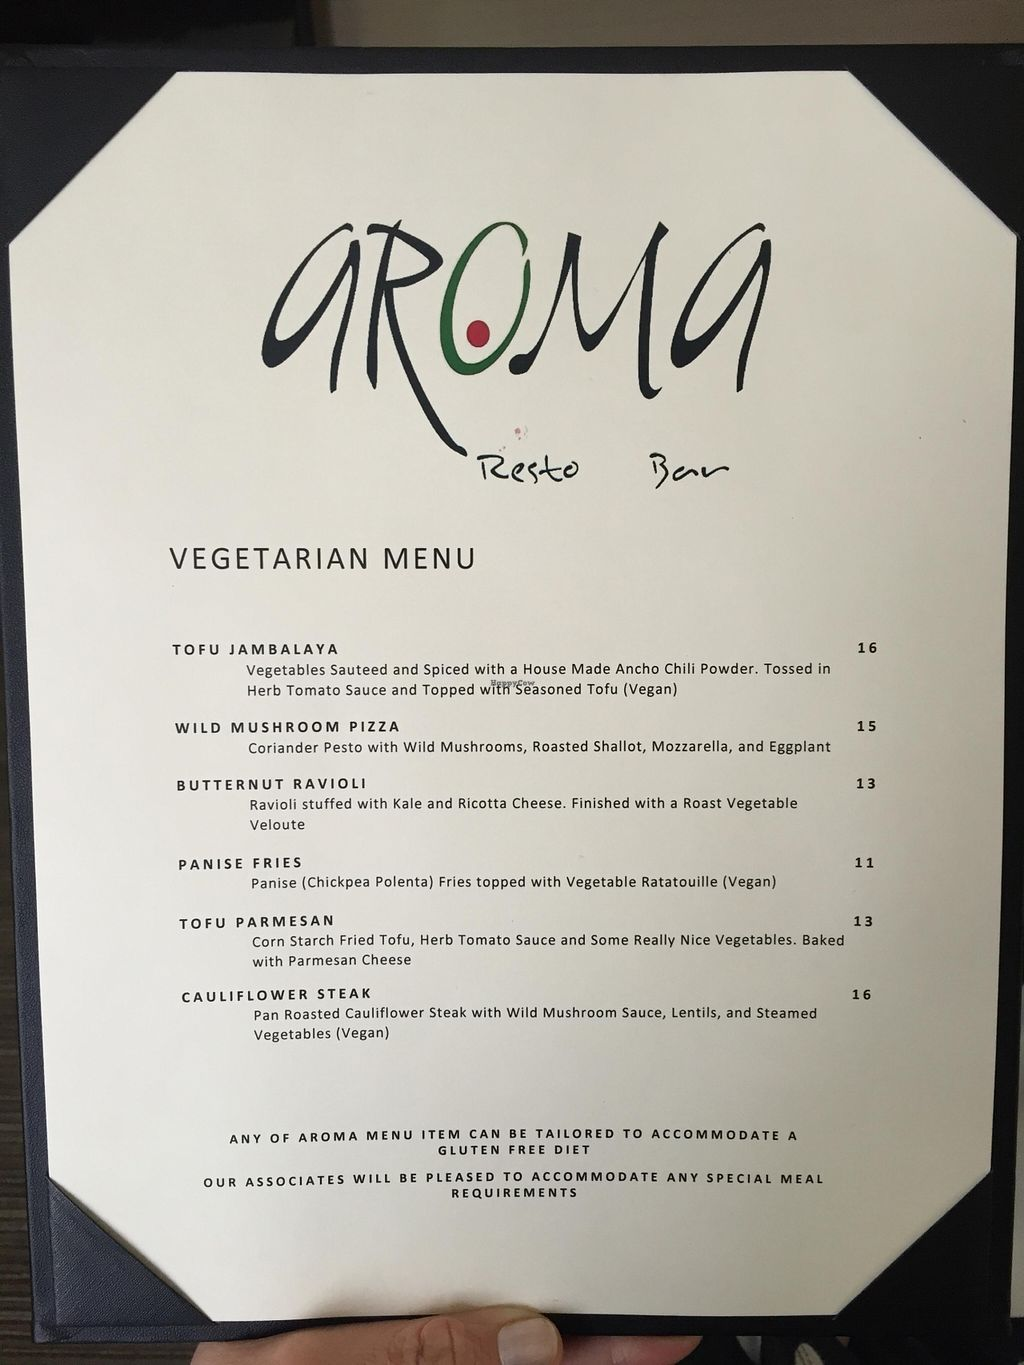 """Photo of Aroma Resto Bar - Radisson Hotel  by <a href=""""/members/profile/Agoodkey"""">Agoodkey</a> <br/>Menu from March 2016. I had the panise fries and the dish was delicious! <br/> March 28, 2016  - <a href='/contact/abuse/image/71359/141678'>Report</a>"""